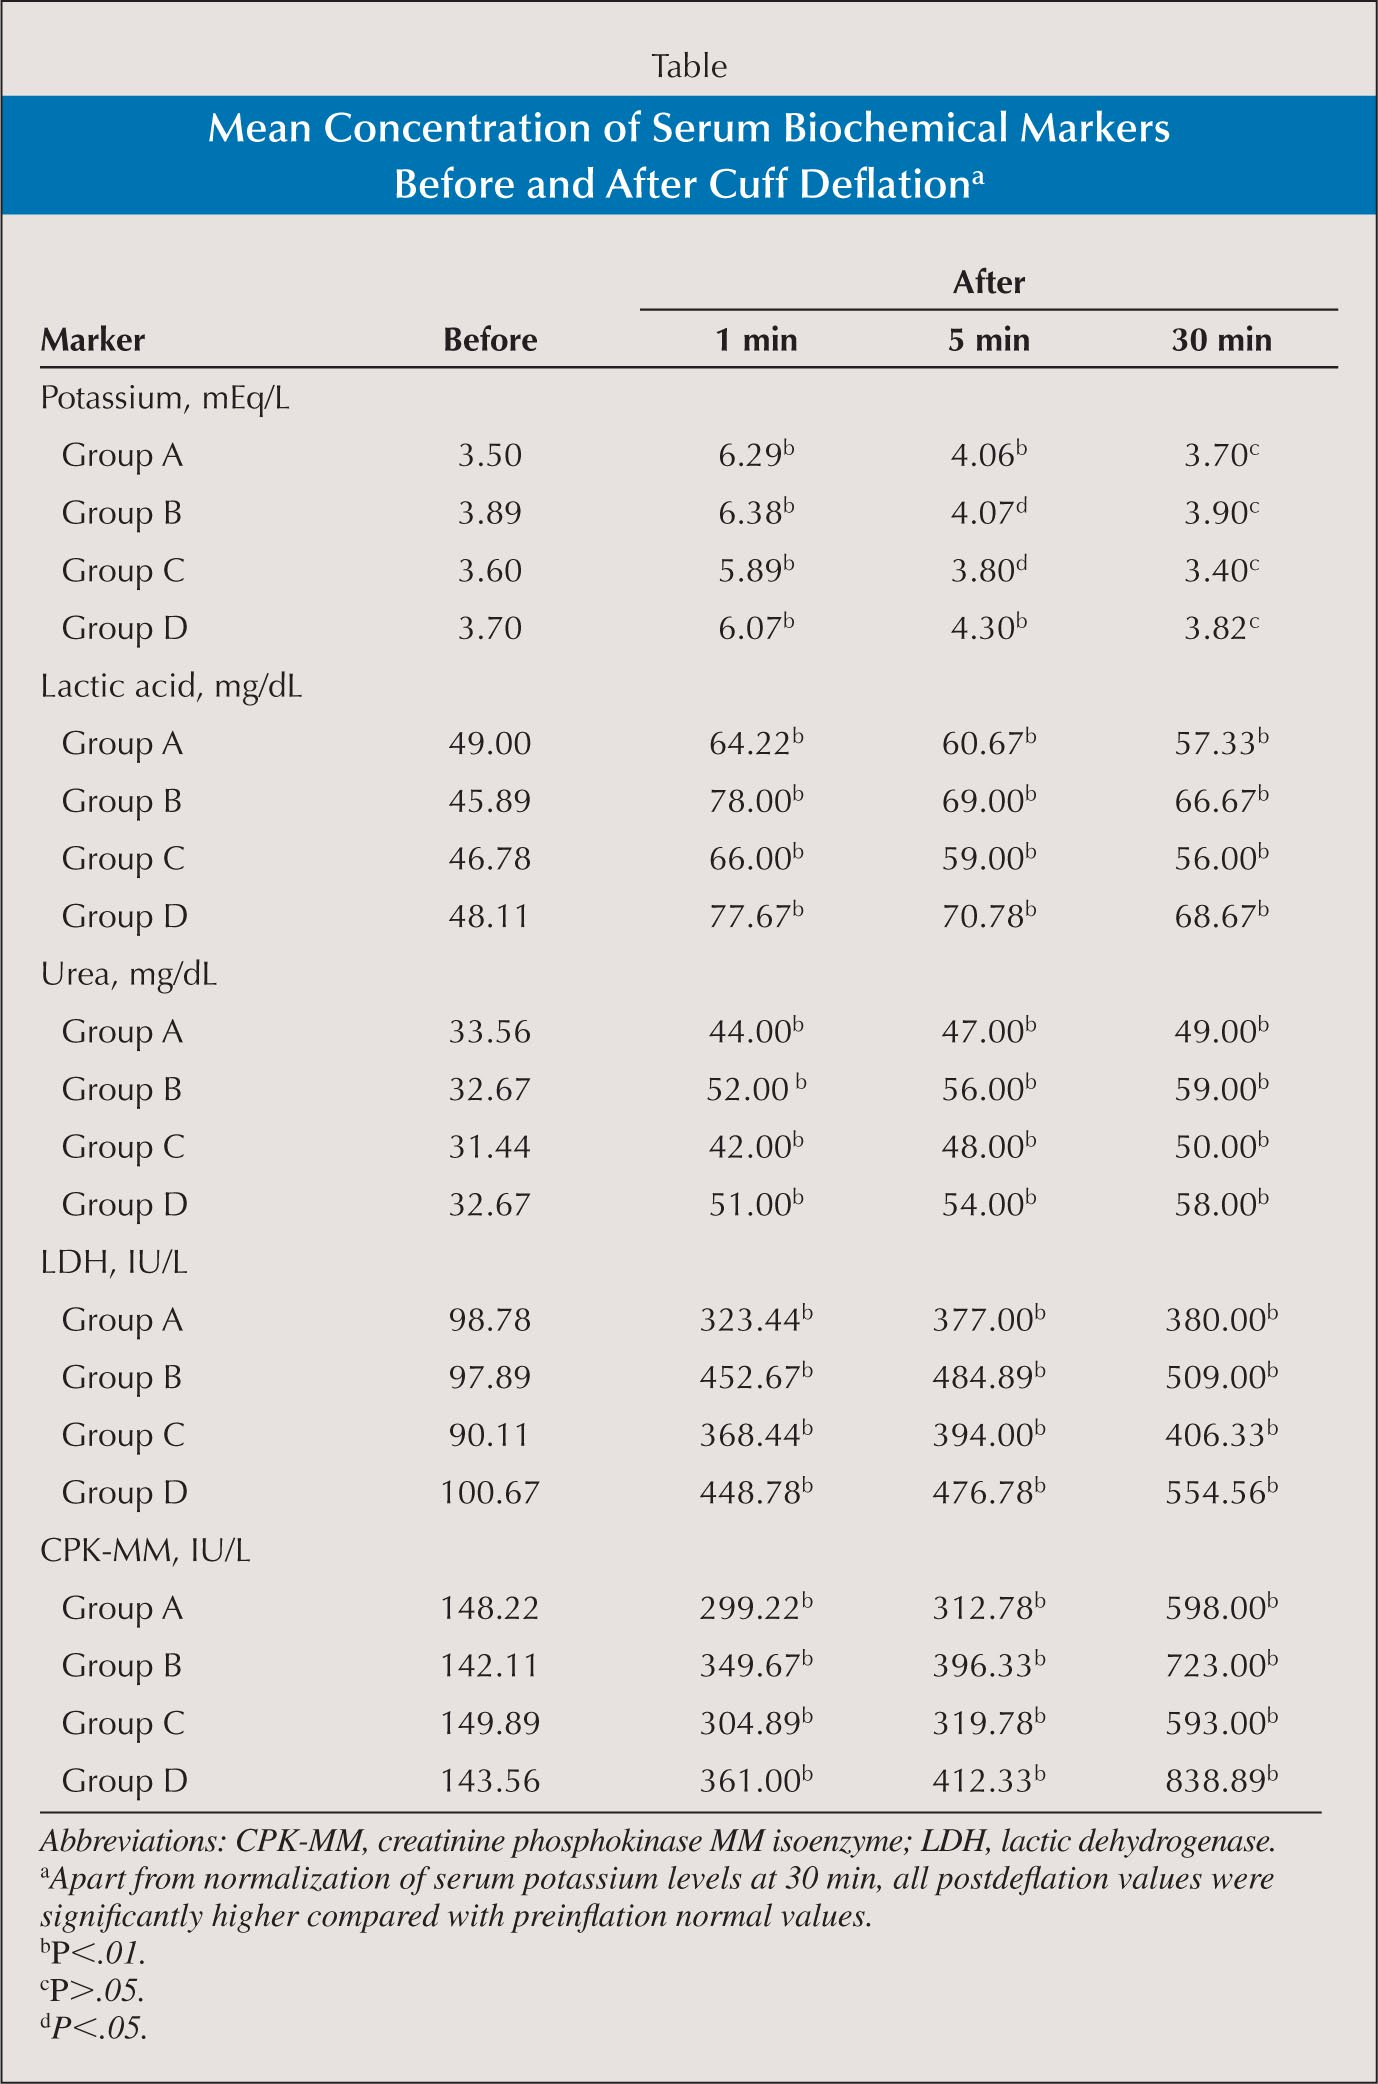 Mean Concentration of Serum Biochemical Markers Before and After Cuff Deflationa